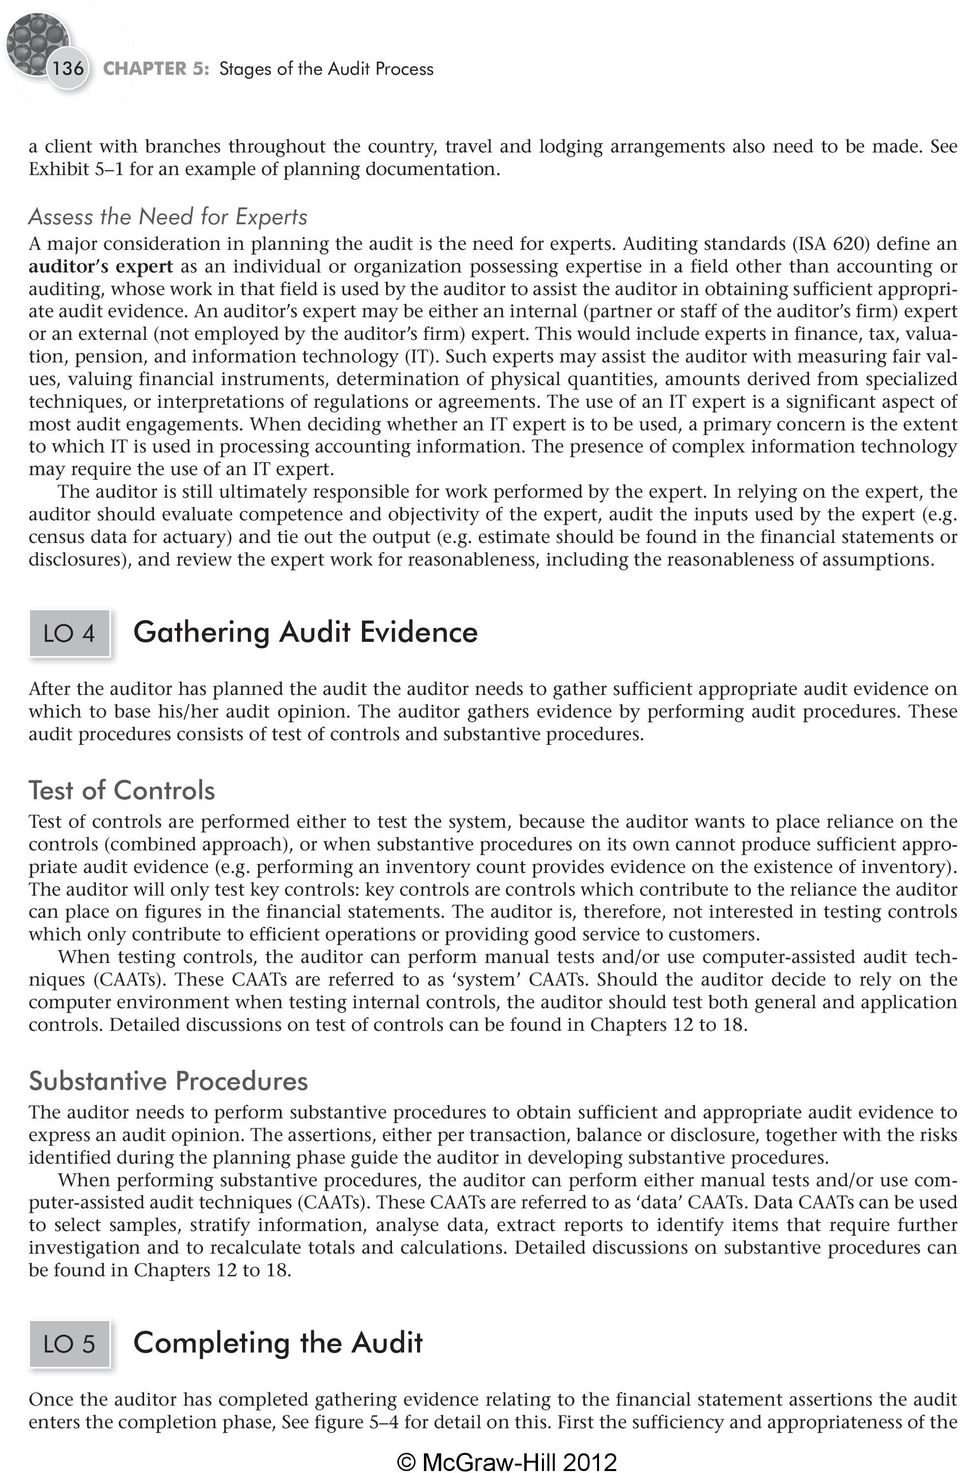 Auditing standards (ISA 620) define an auditor s expert as an individual or organization possessing expertise in a field other than accounting or auditing, whose work in that field is used by the